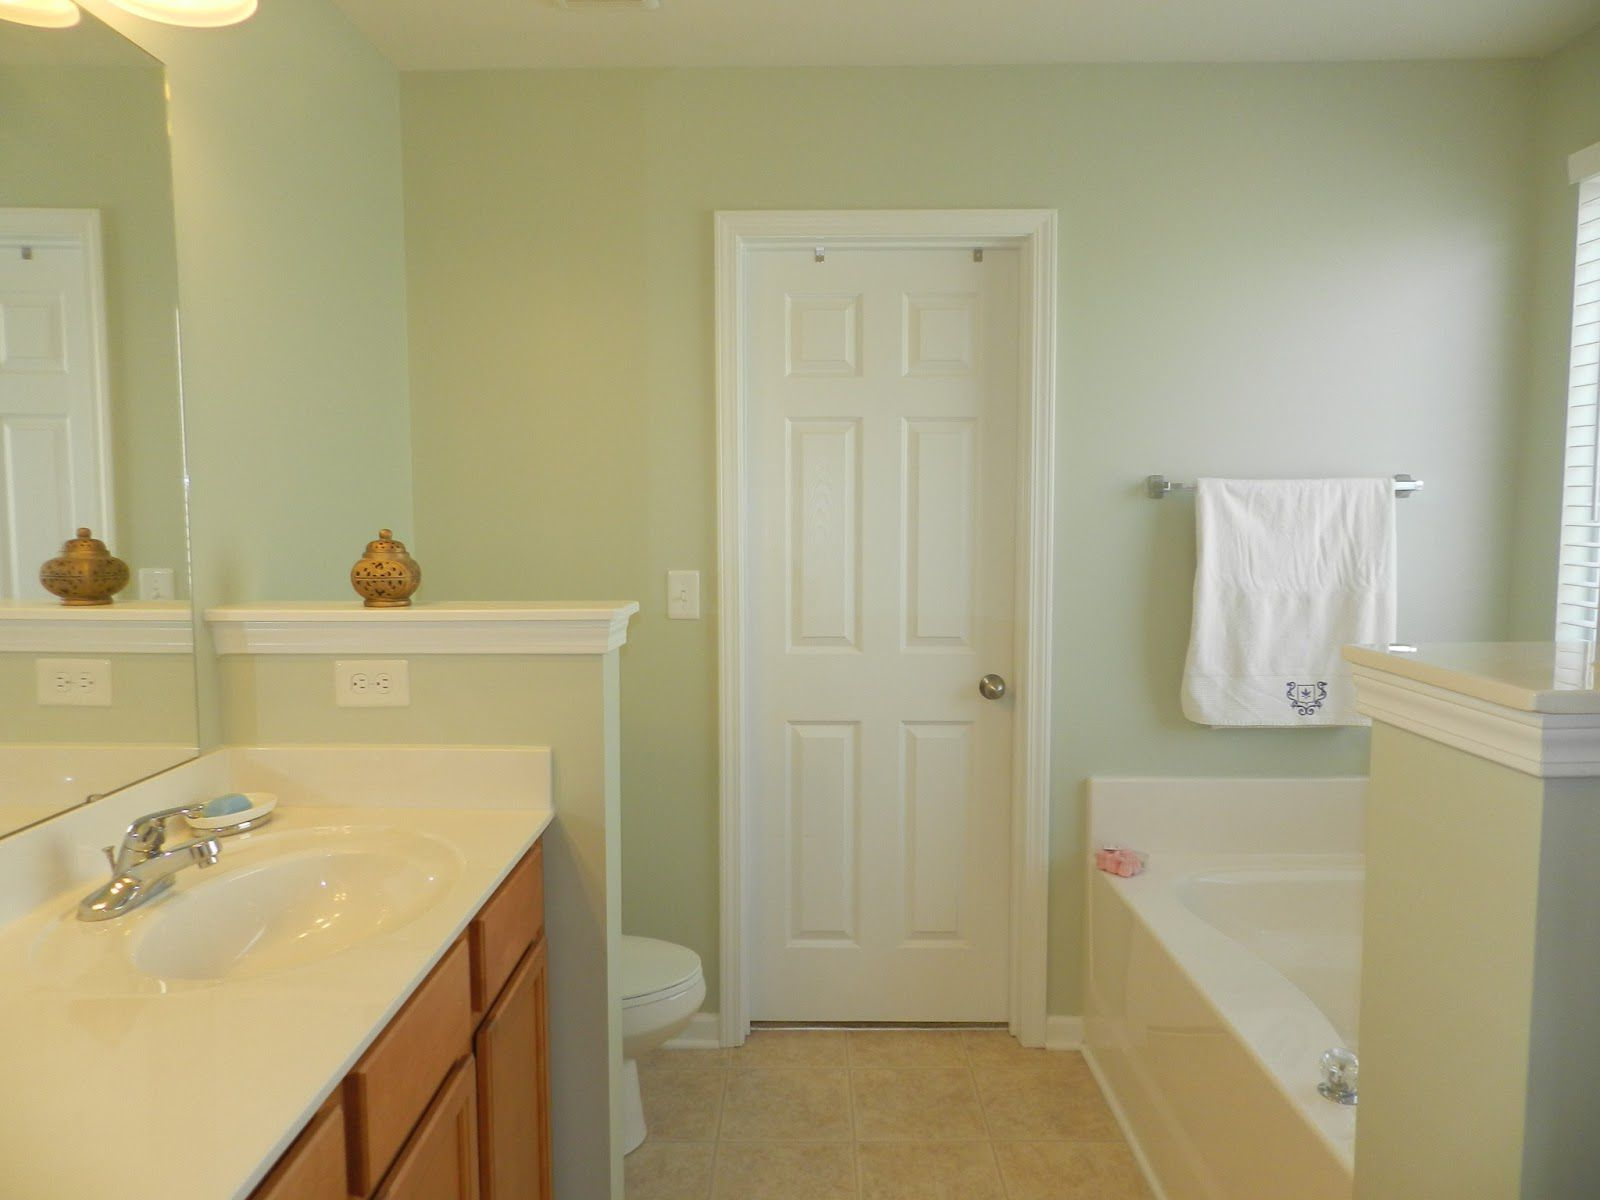 top 7 cool paint colors from sherwin williams on paint colors by sherwin williams id=64618